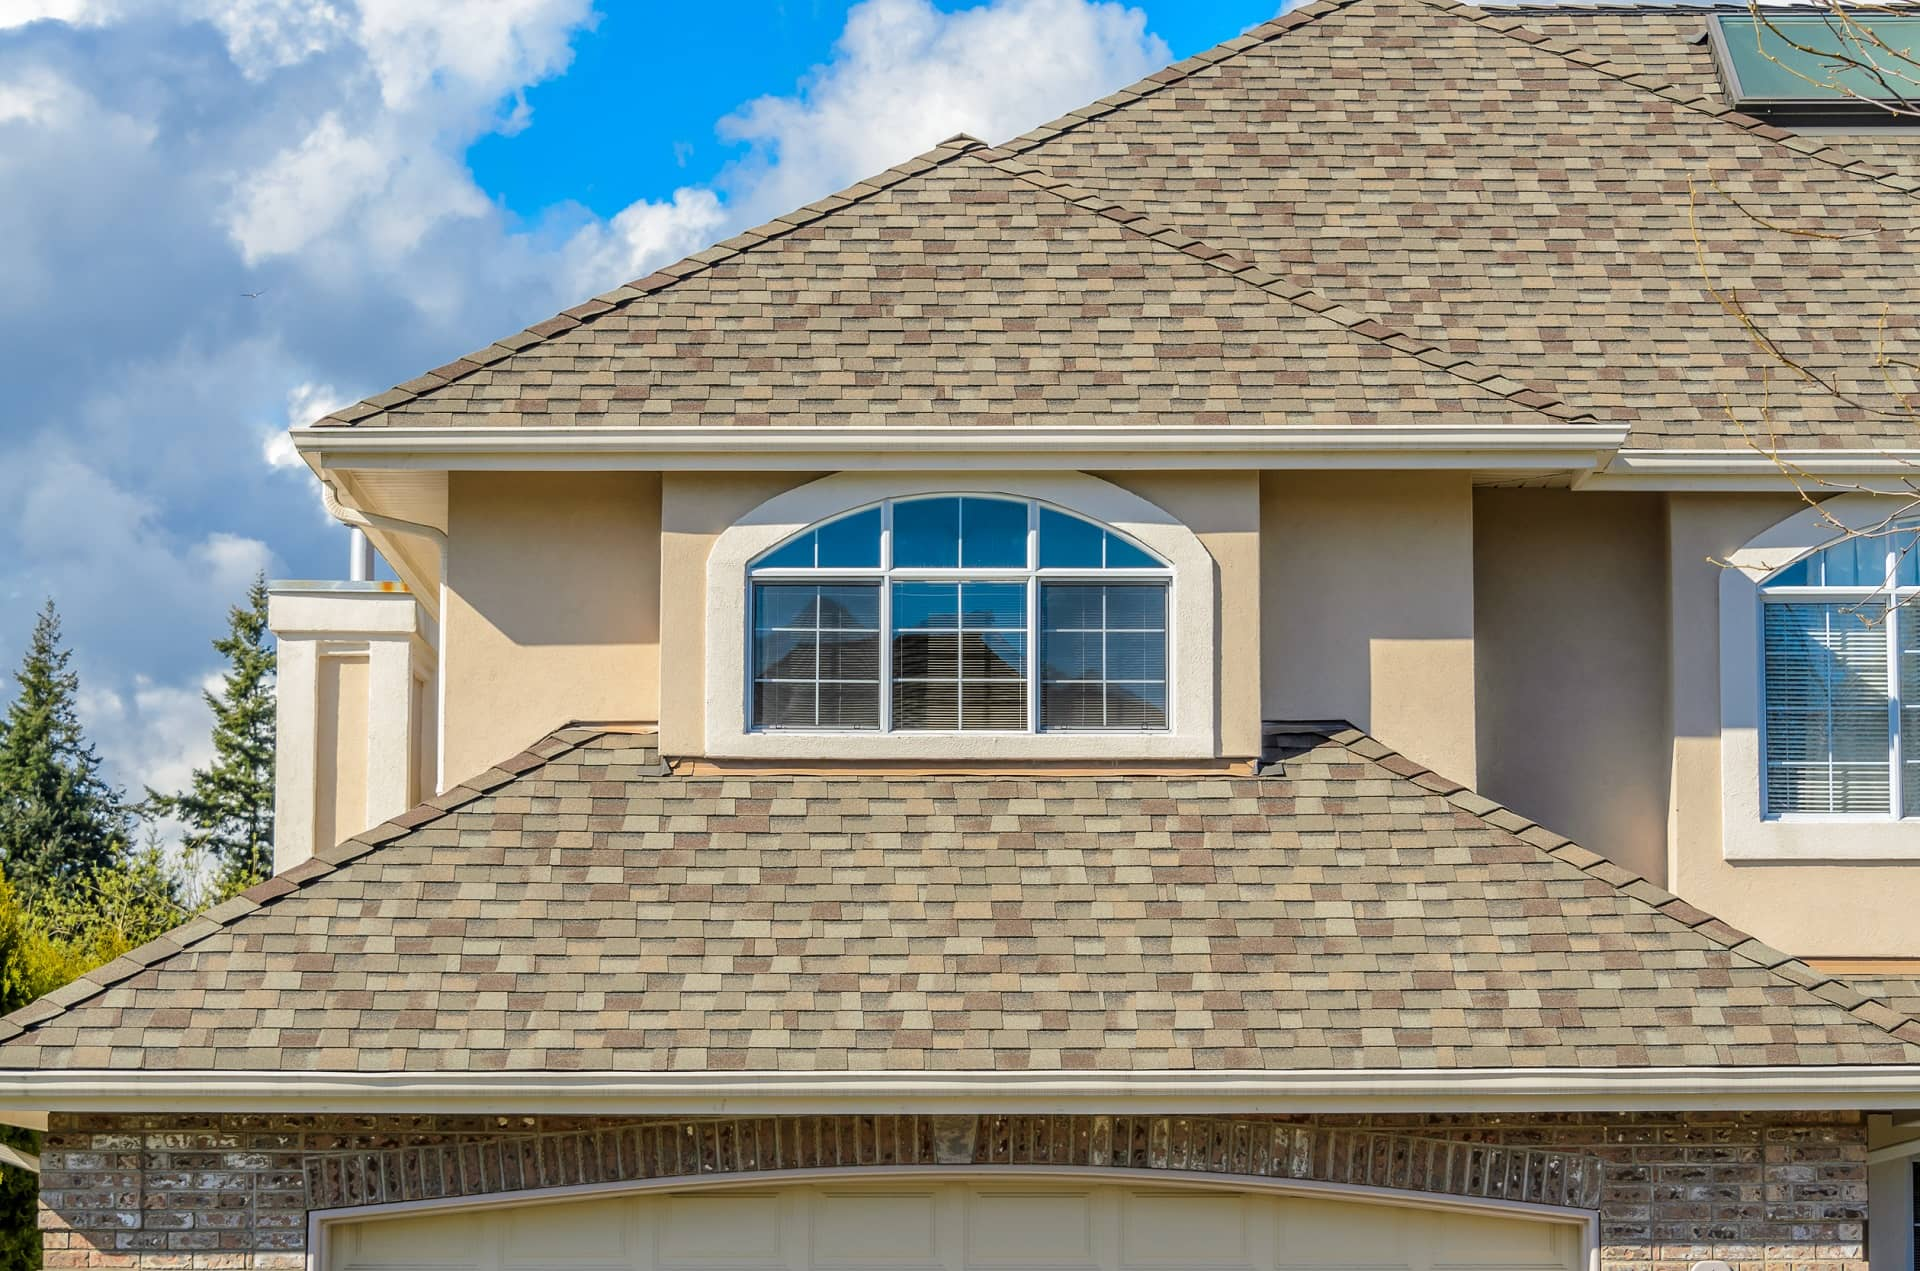 Roofing contractor in White Plains NY